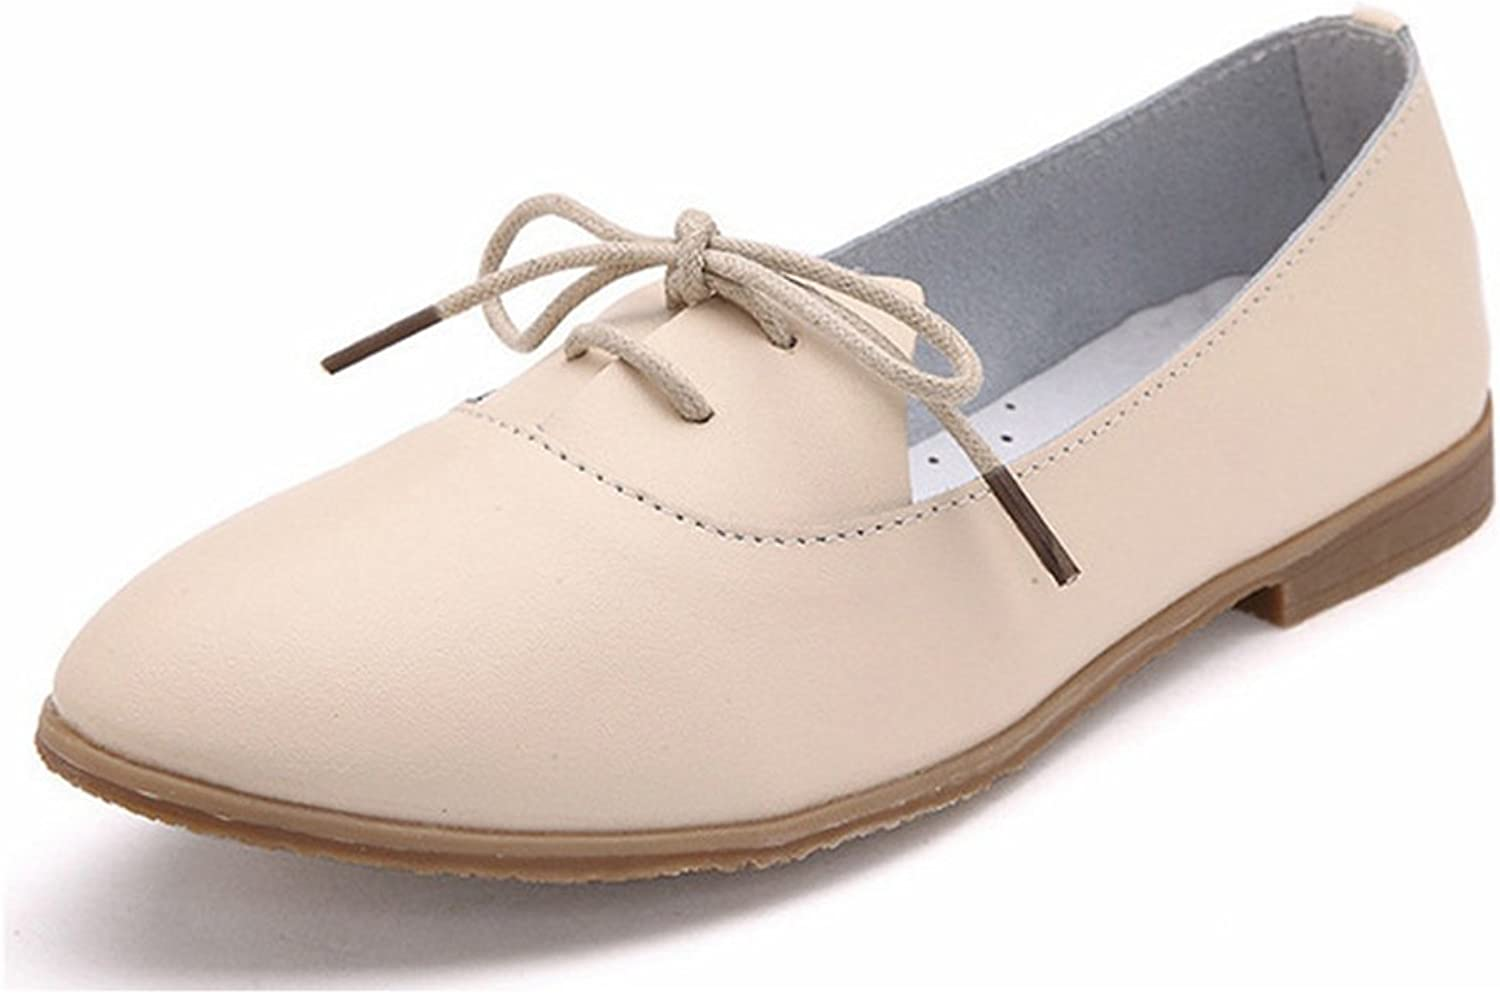 York Zhu Women Oxford shoes, Lace-Up Pointed Toe Flats shoes Ladies Loafers Beige